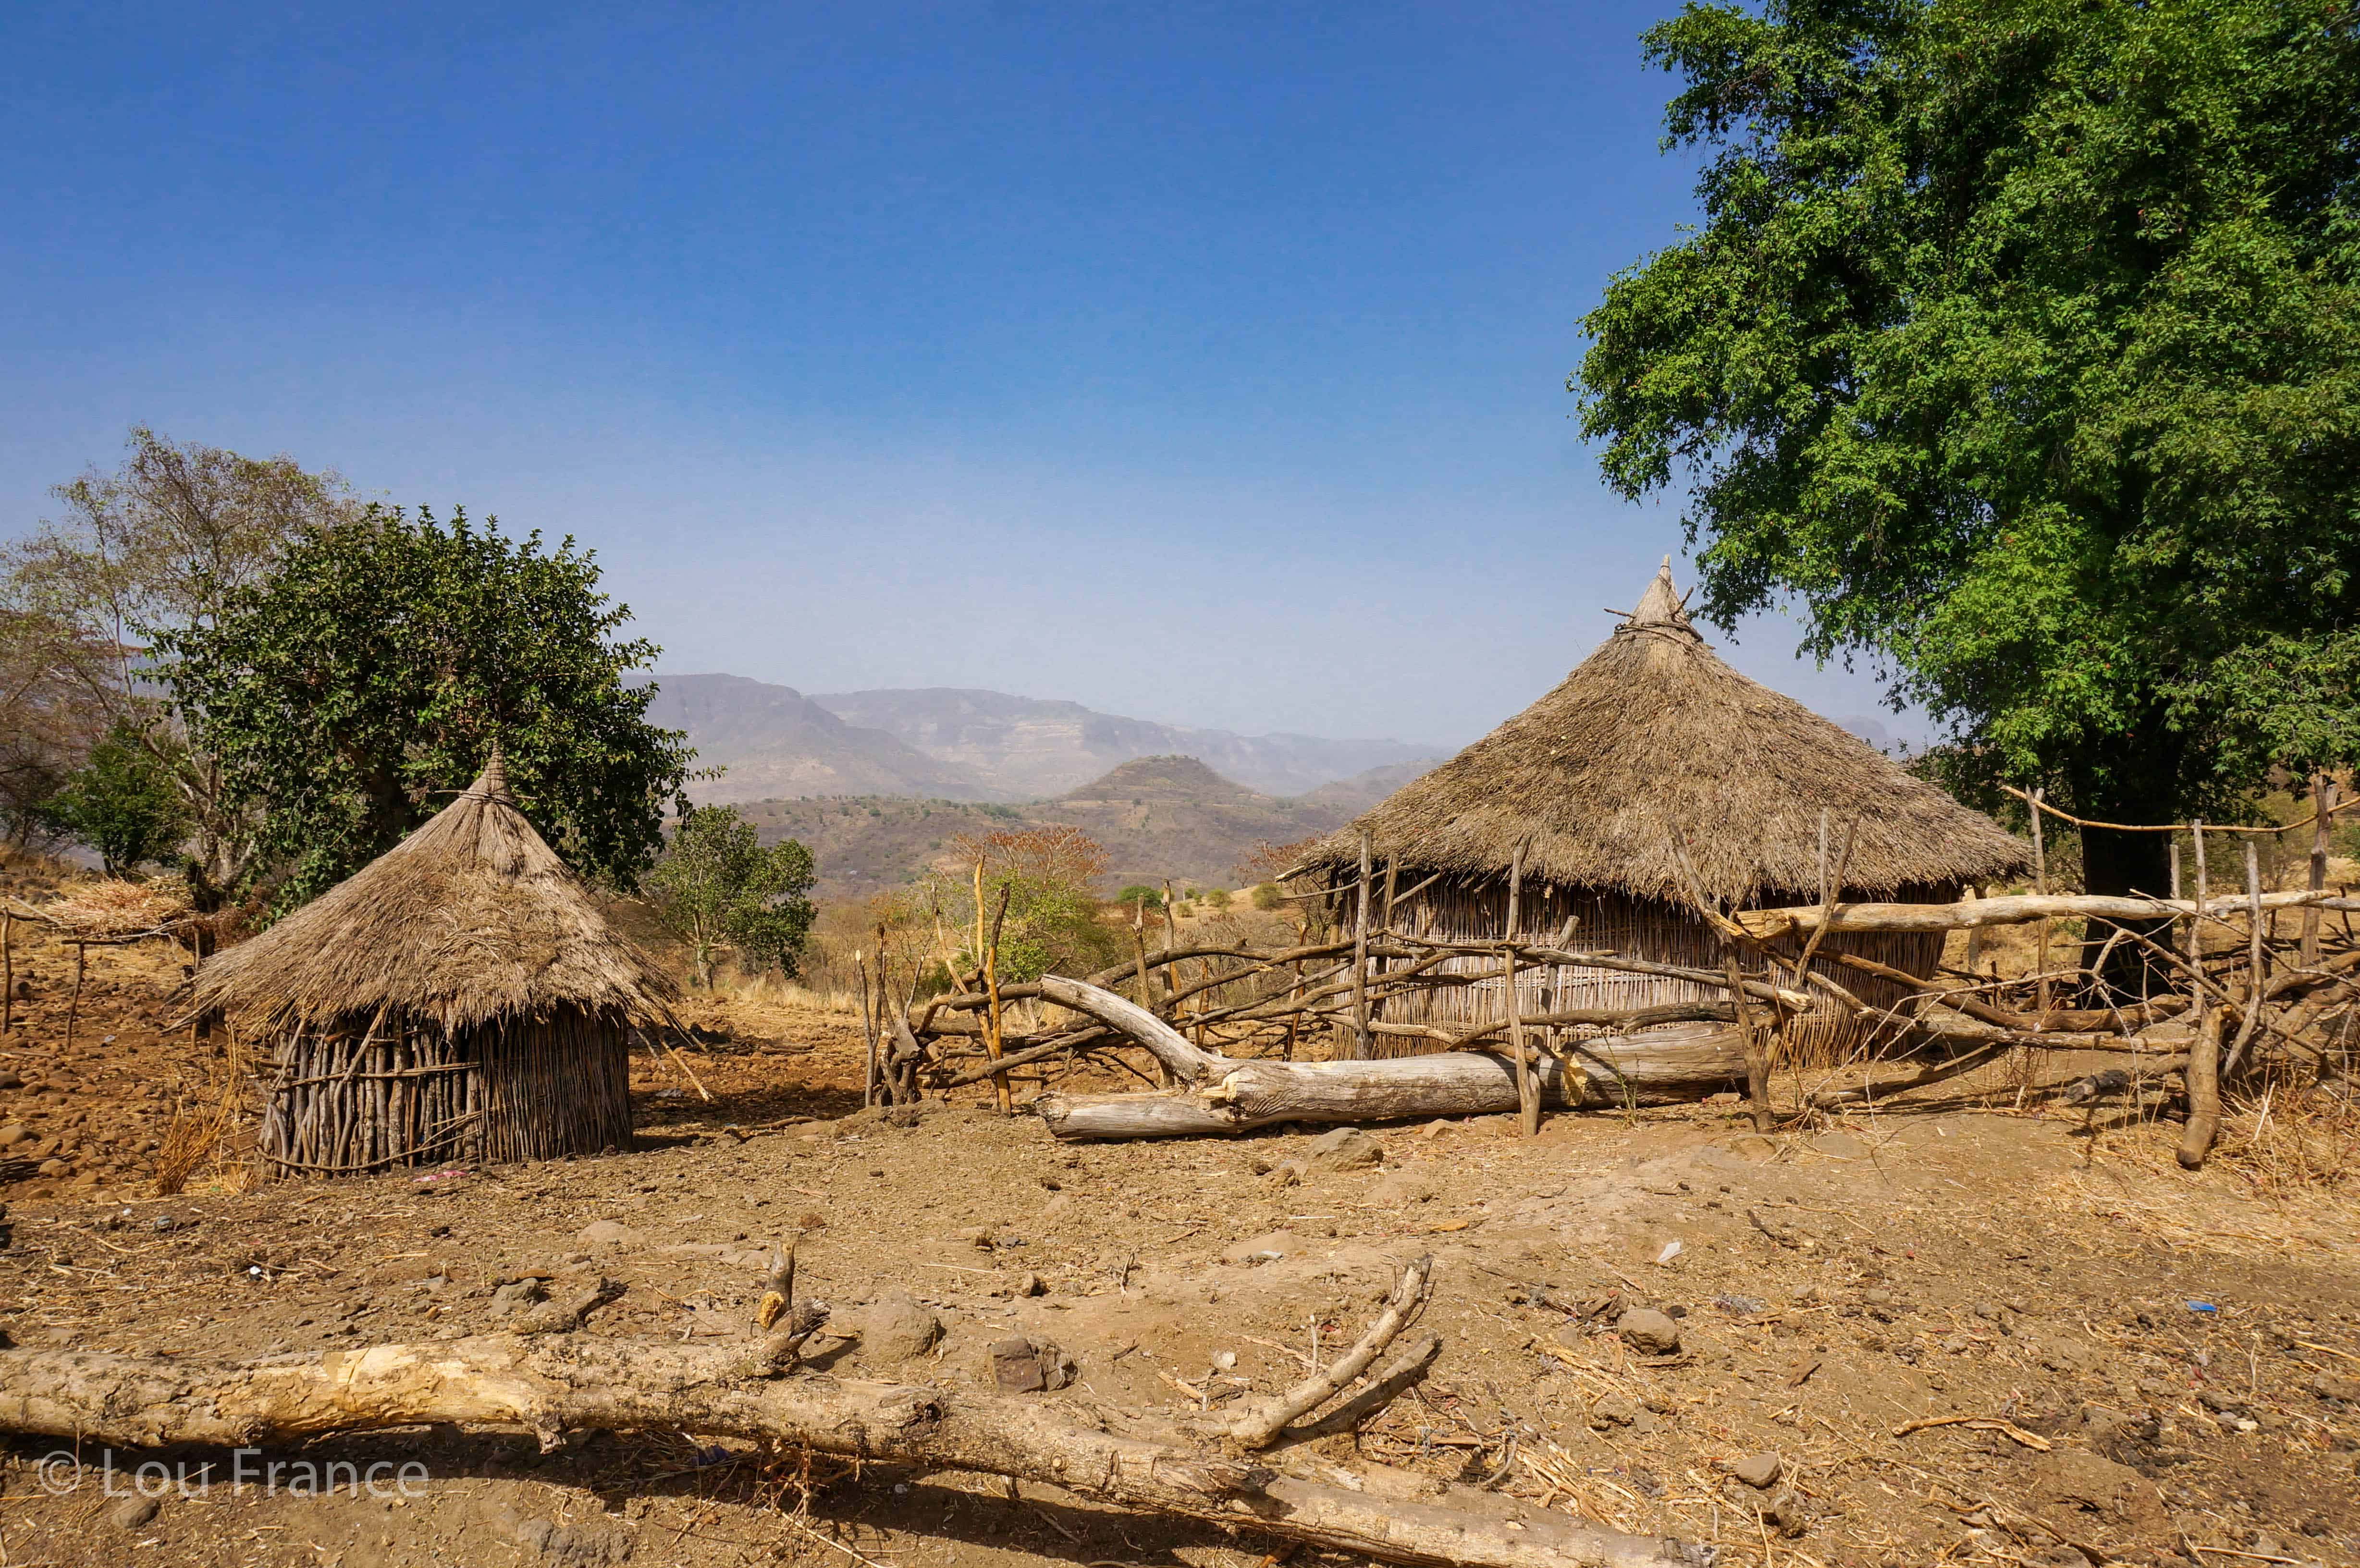 Ethiopia Travel Tips: Know before you go